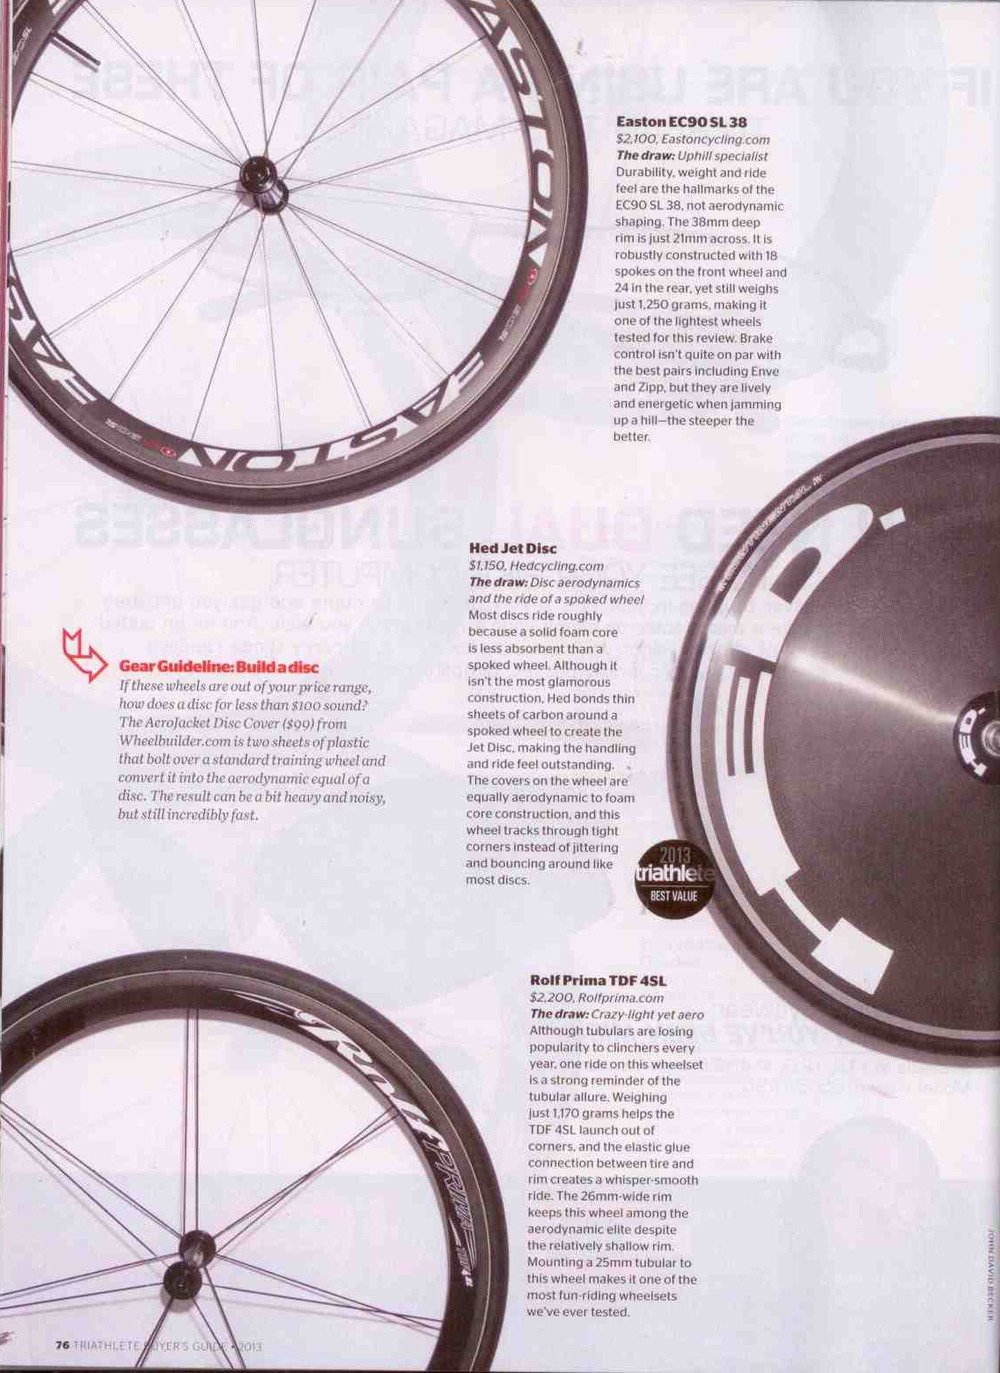 TdF4 SL review - Triathlete Magazine, Spring 2013 buyers guide